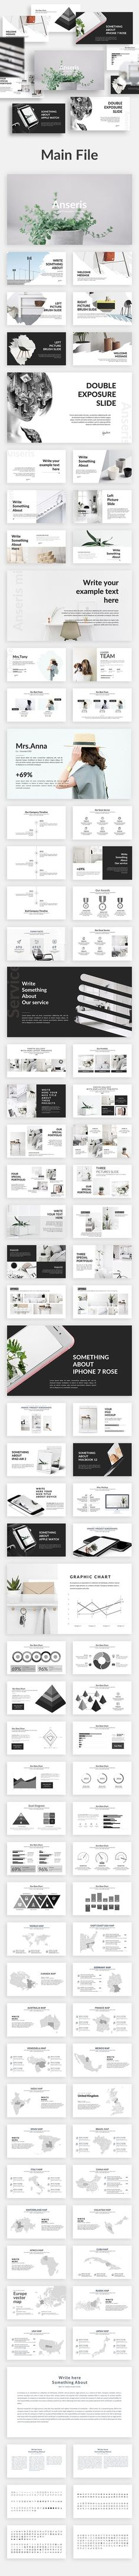 ◡ [Get Free]◖ Anseris - Minimal Powerpoint Template Agency Bleached Bluestack Casual Chart Corporate Powerpoint Themes, Creative Powerpoint Templates, Powerpoint Presentation Templates, Free Keynote Template, Web Design, Layout Design, Creative Design, Keynote Design, Keynote Presentation